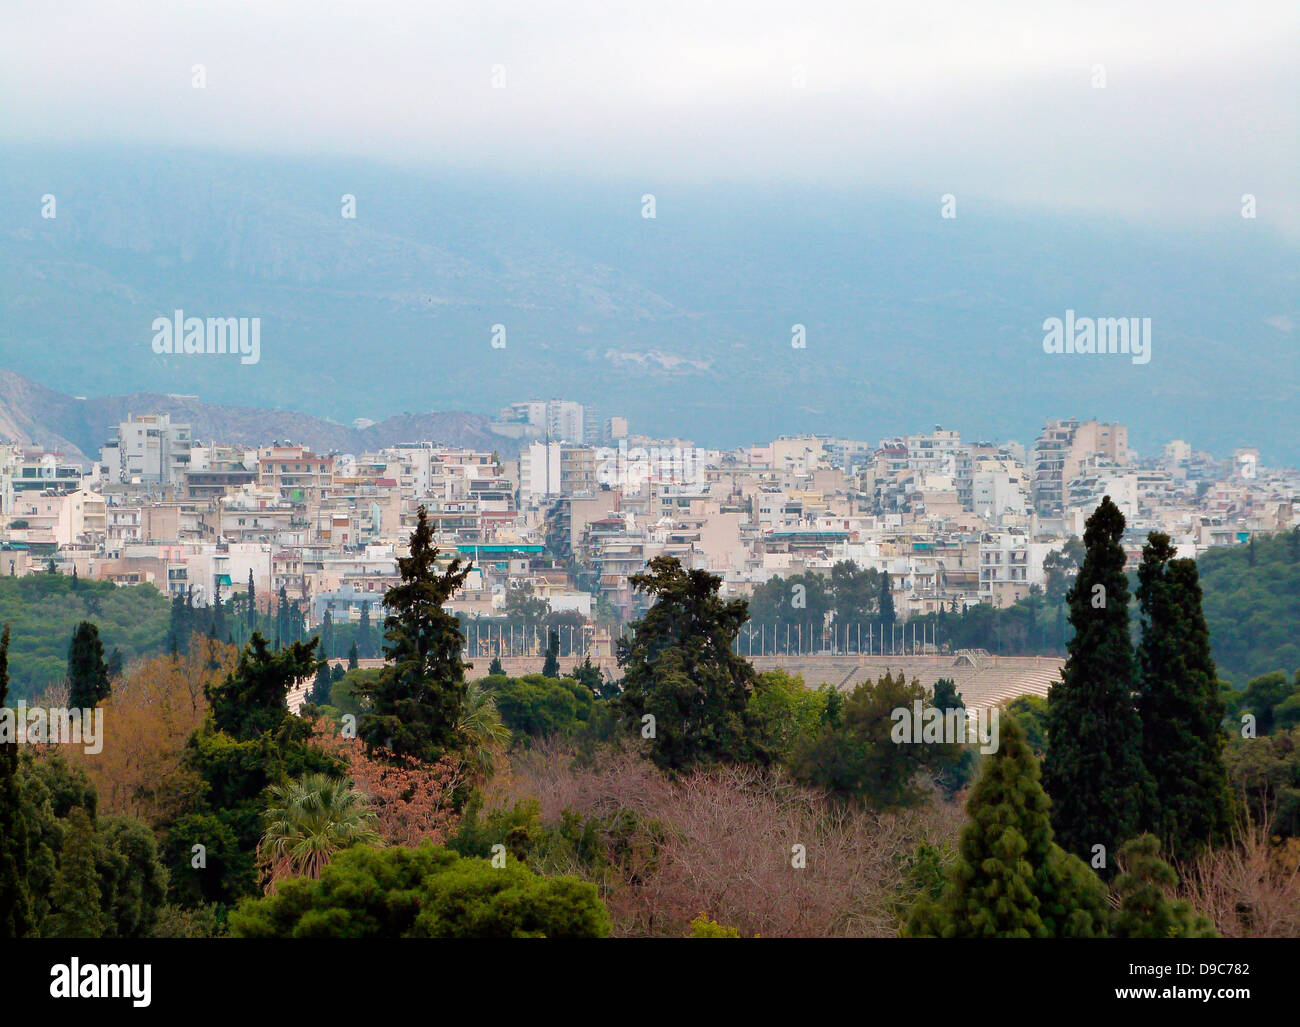 View to the Olympic stadium on an overcast stormy day, Athens, Greece - Stock Image